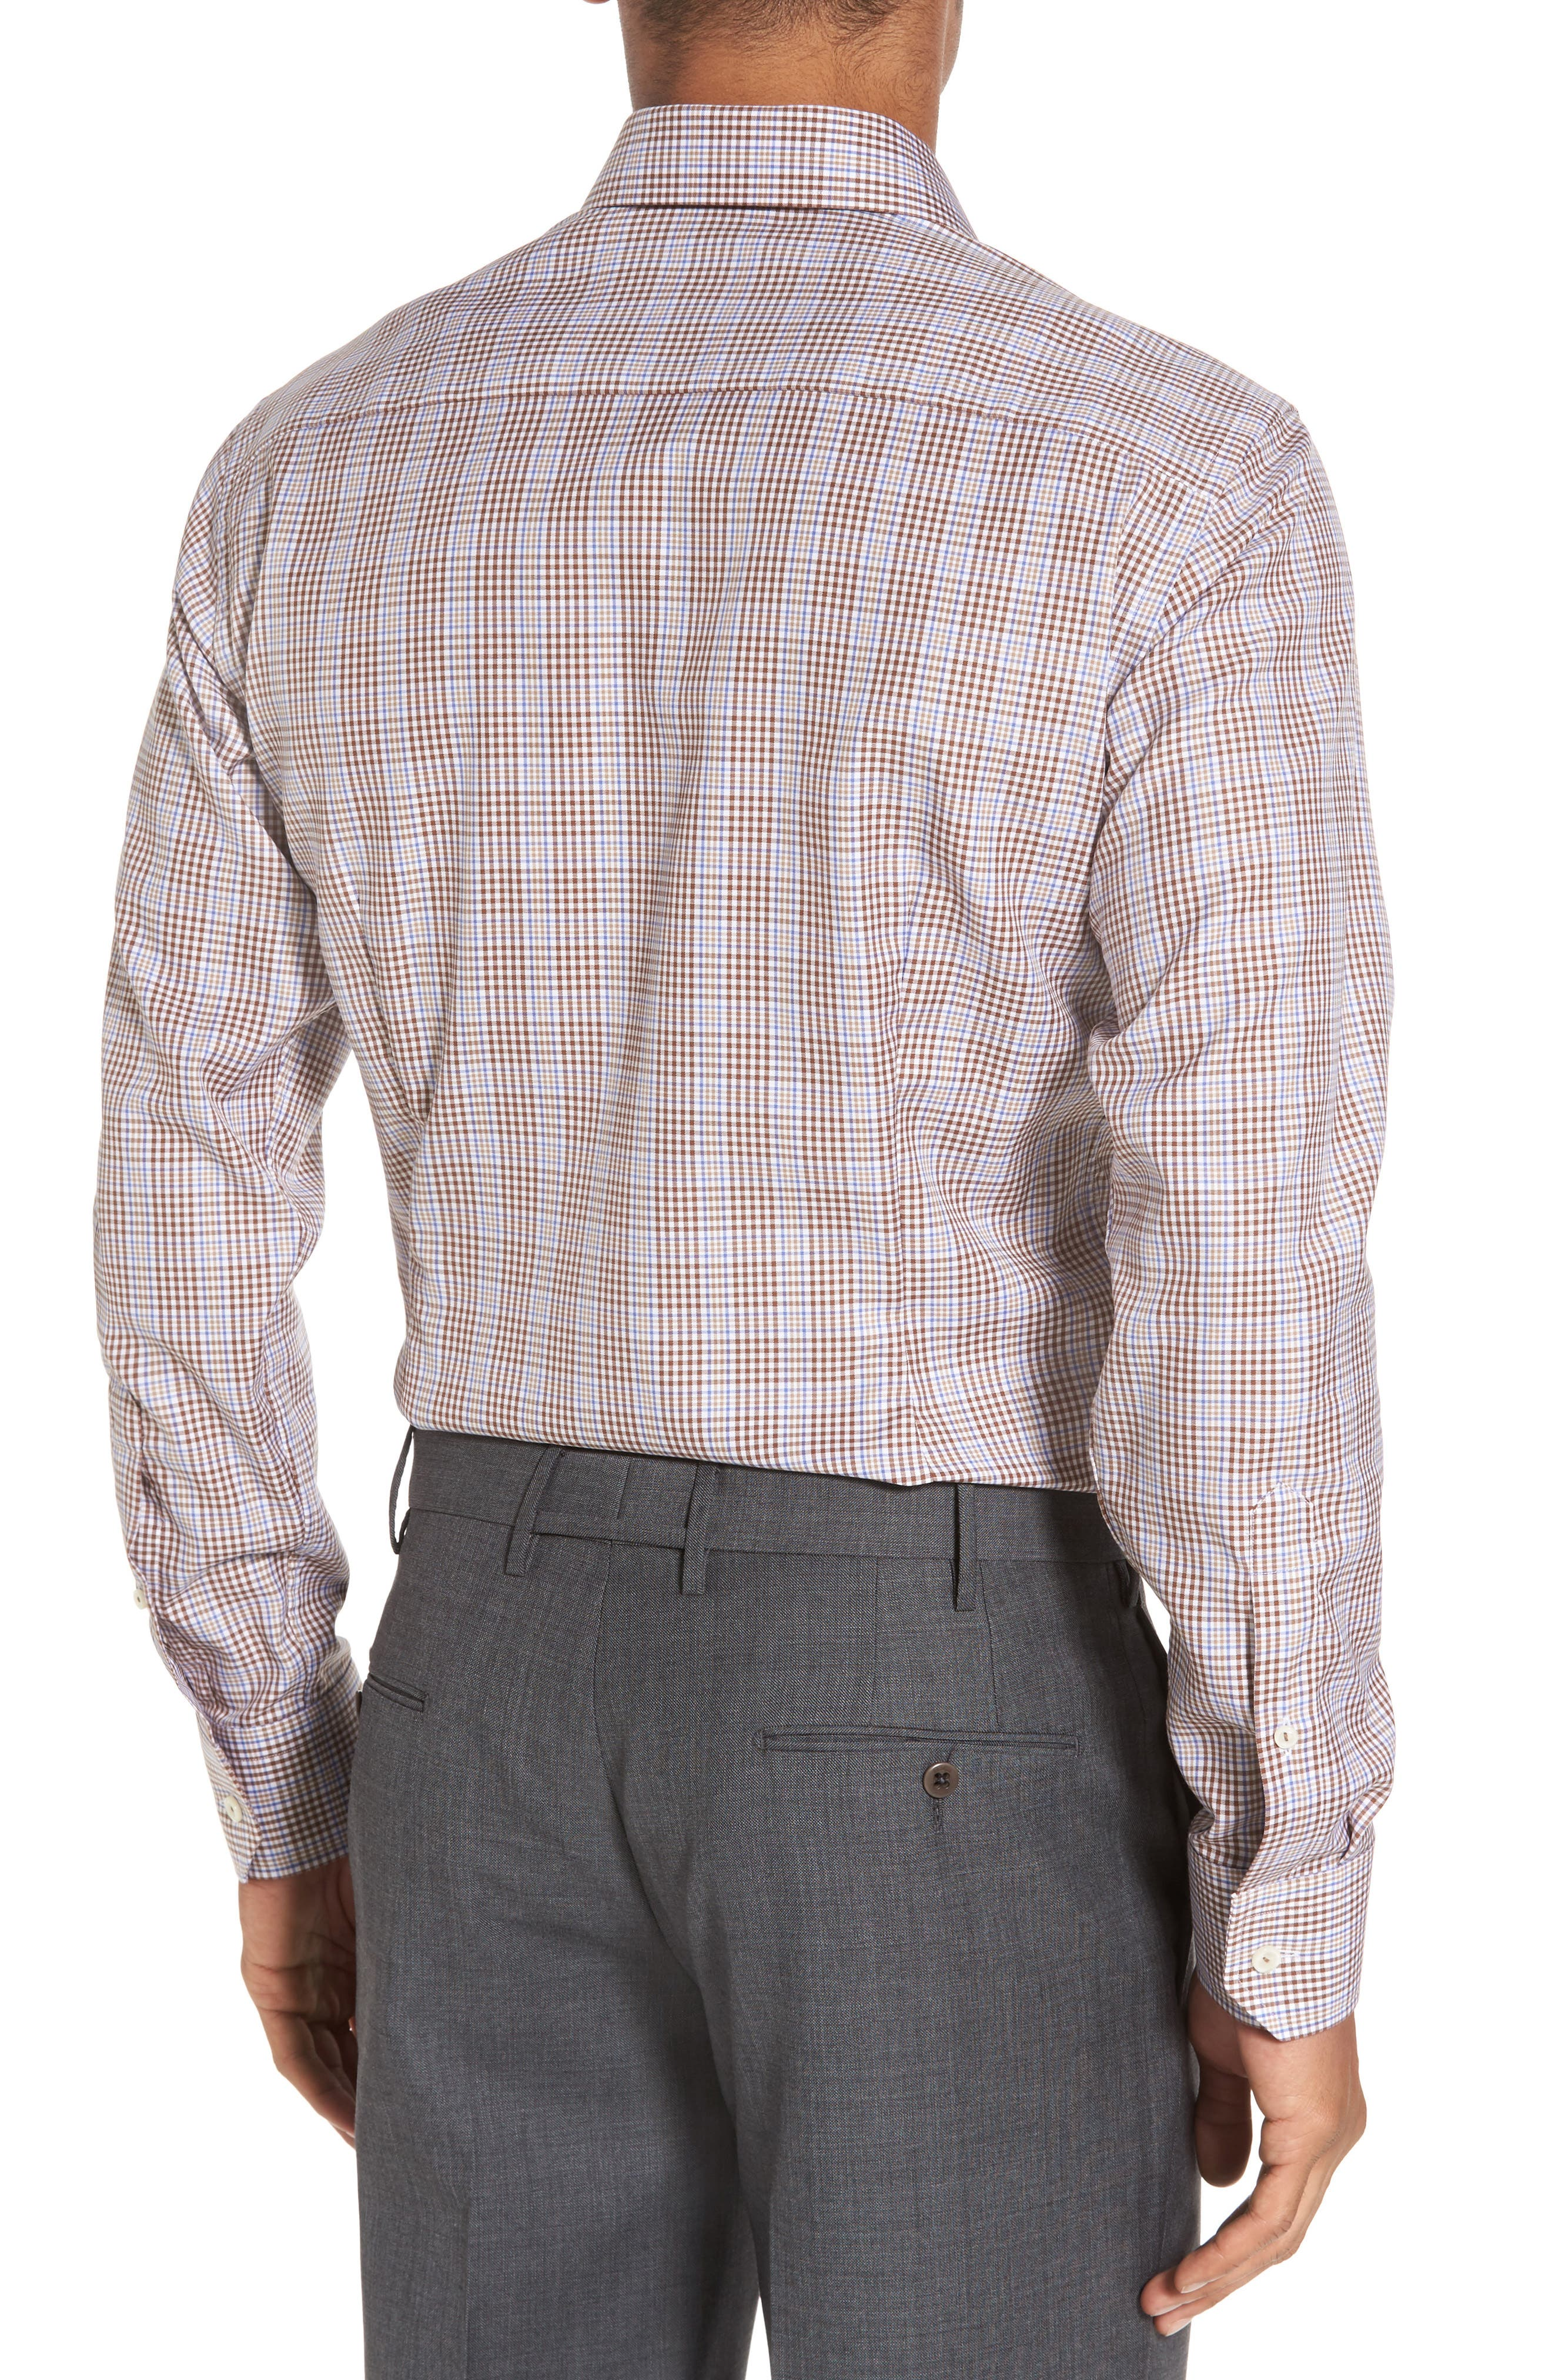 Alternate Image 3  - Eton Slim Fit Plaid Dress Shirt